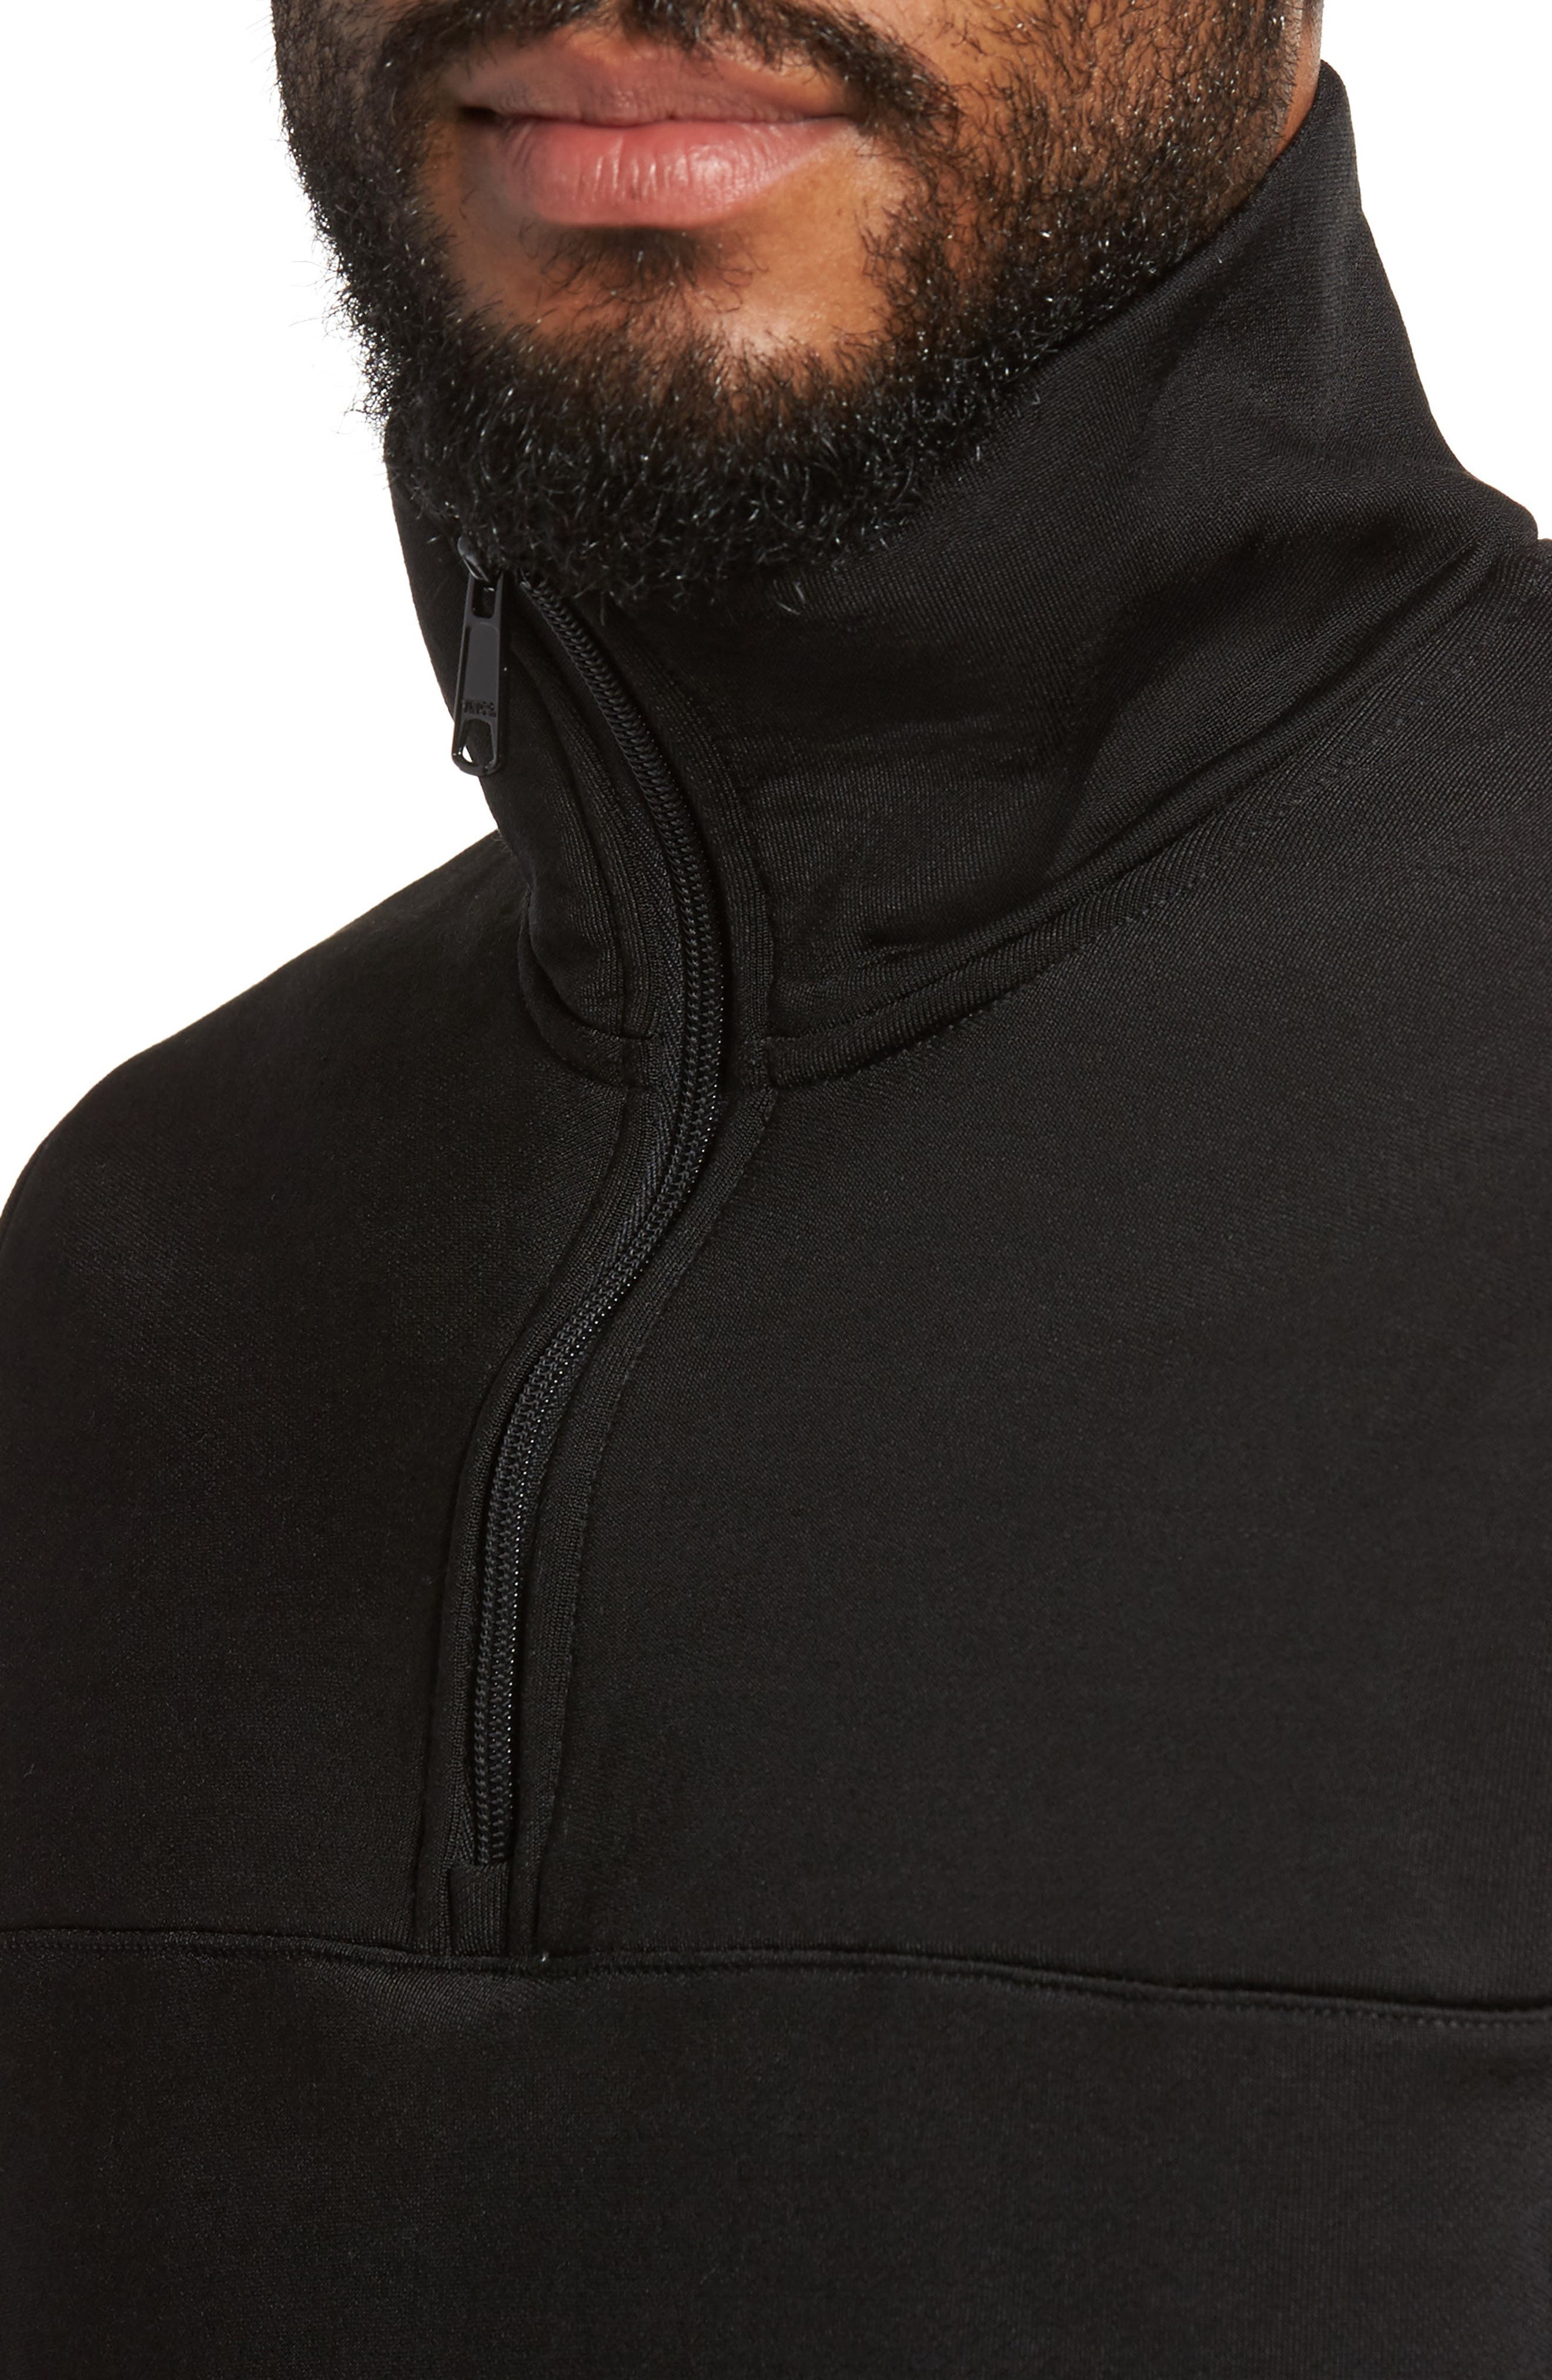 Quarter Zip Pullover,                             Alternate thumbnail 7, color,